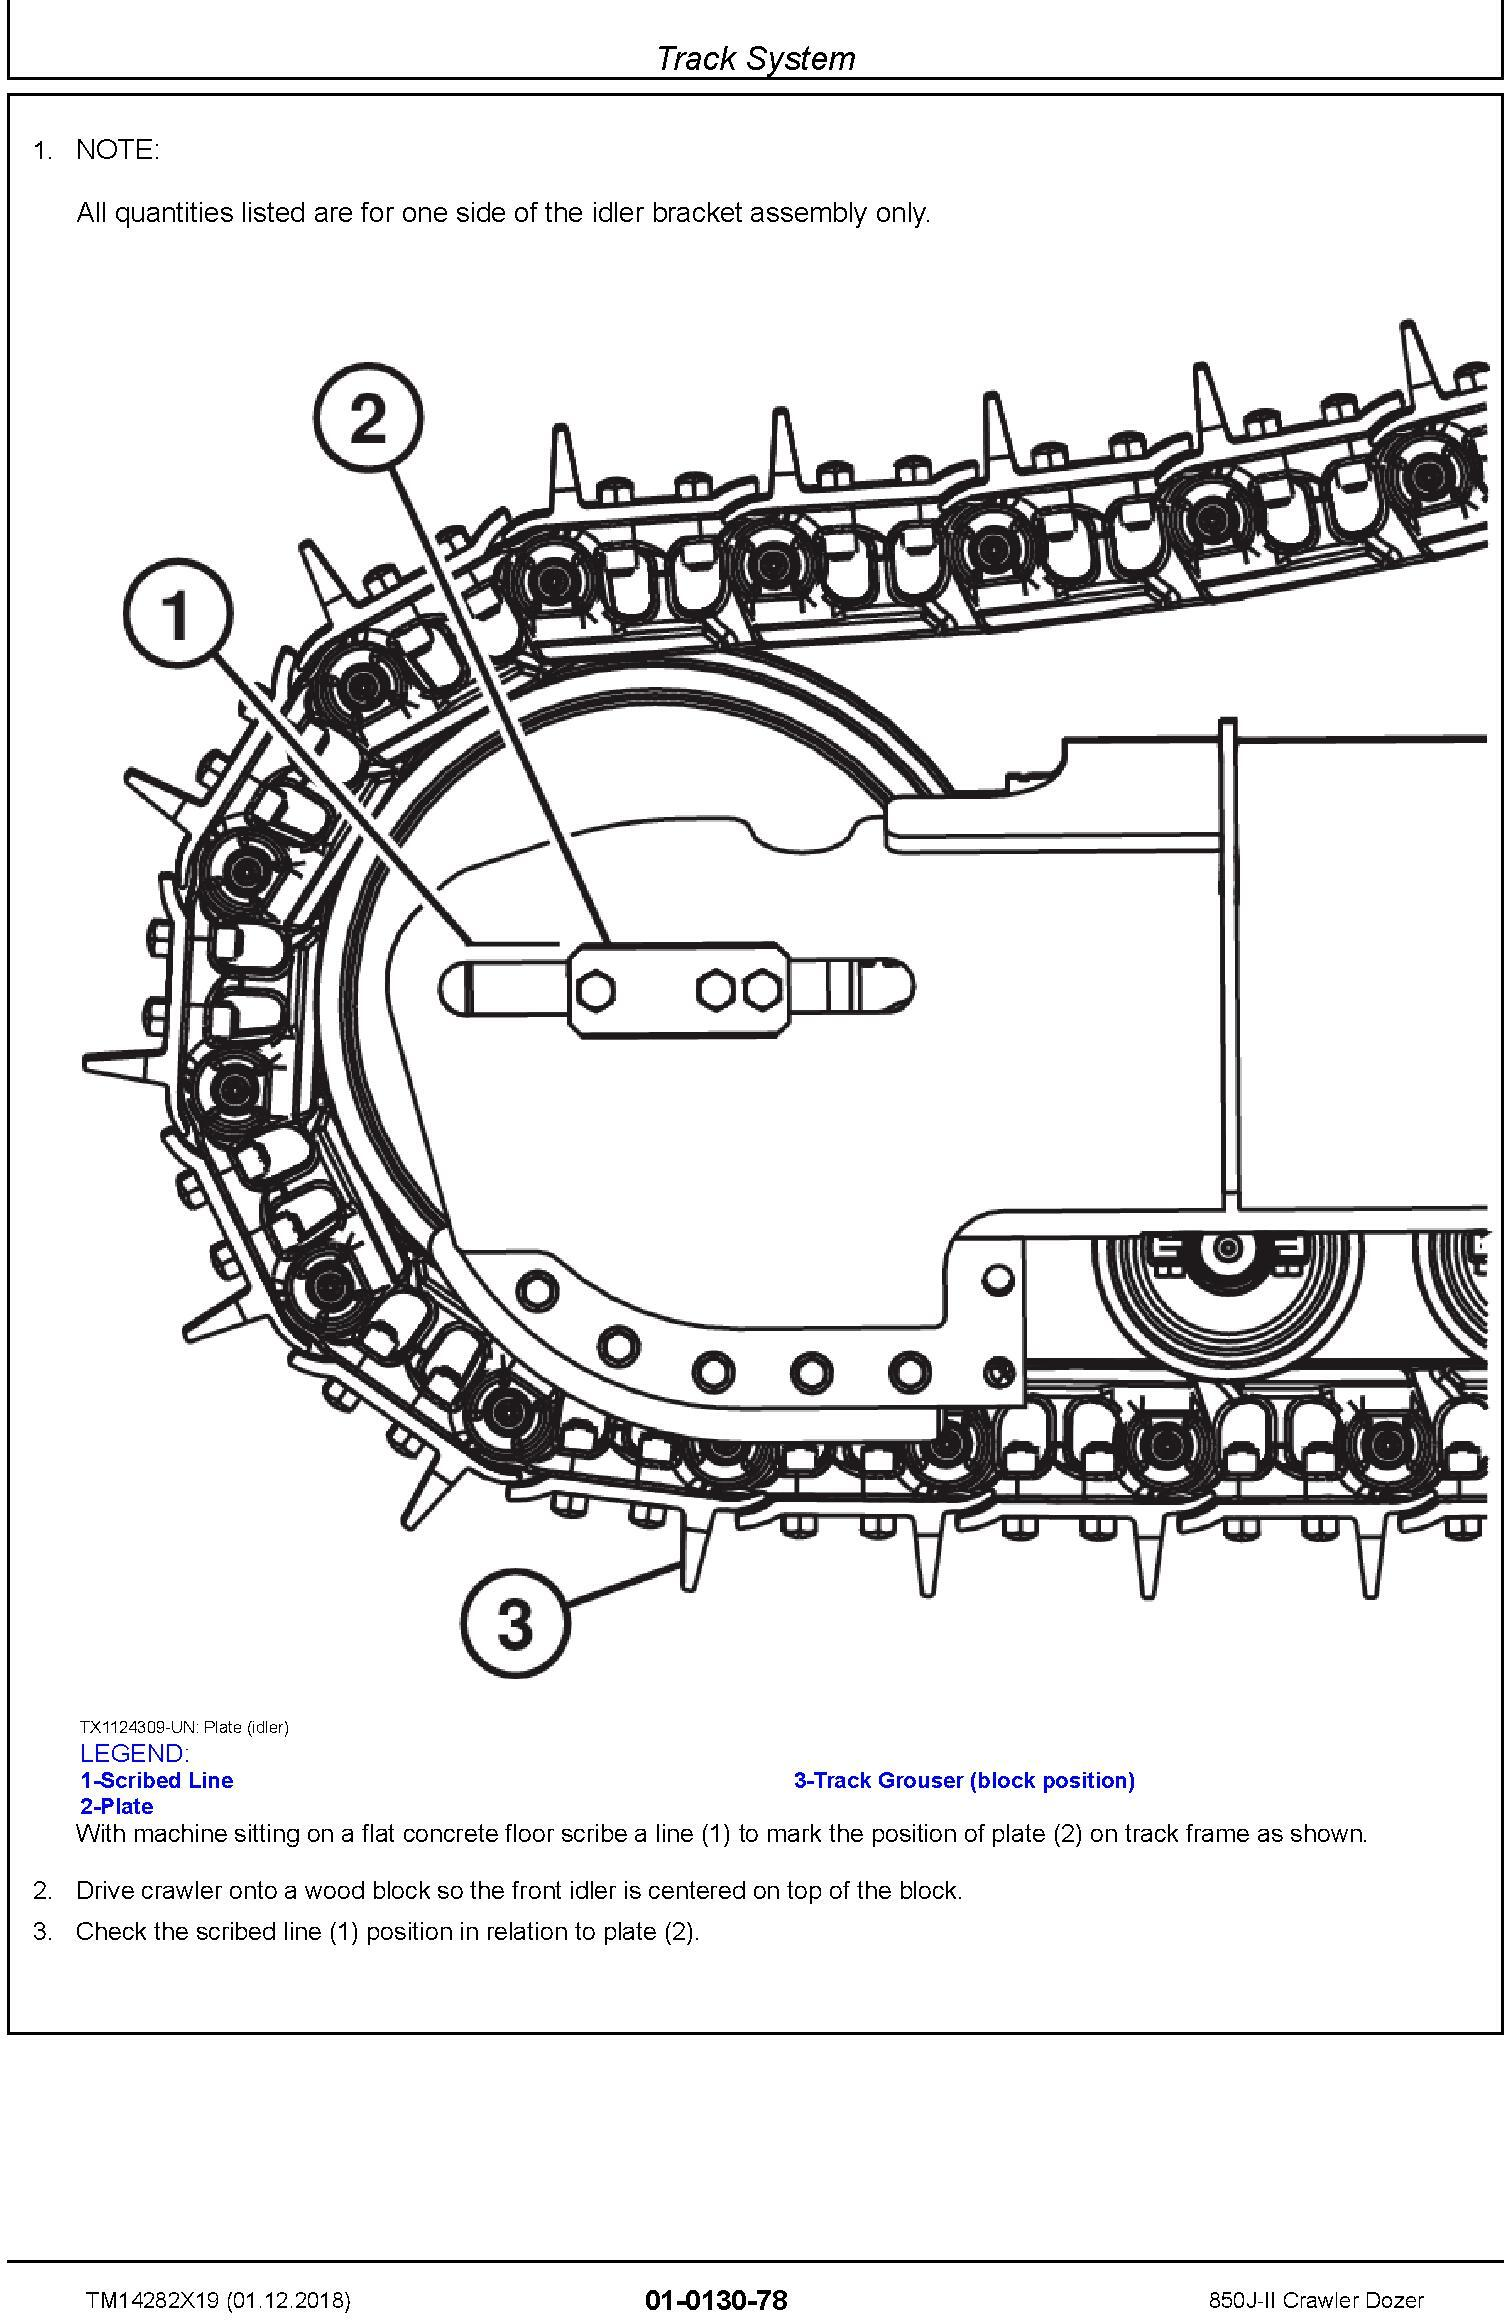 John Deere 850J-II (SN. C000001-) Crawler Dozer Service Repair Technical Manual (TM14282X19) - 3